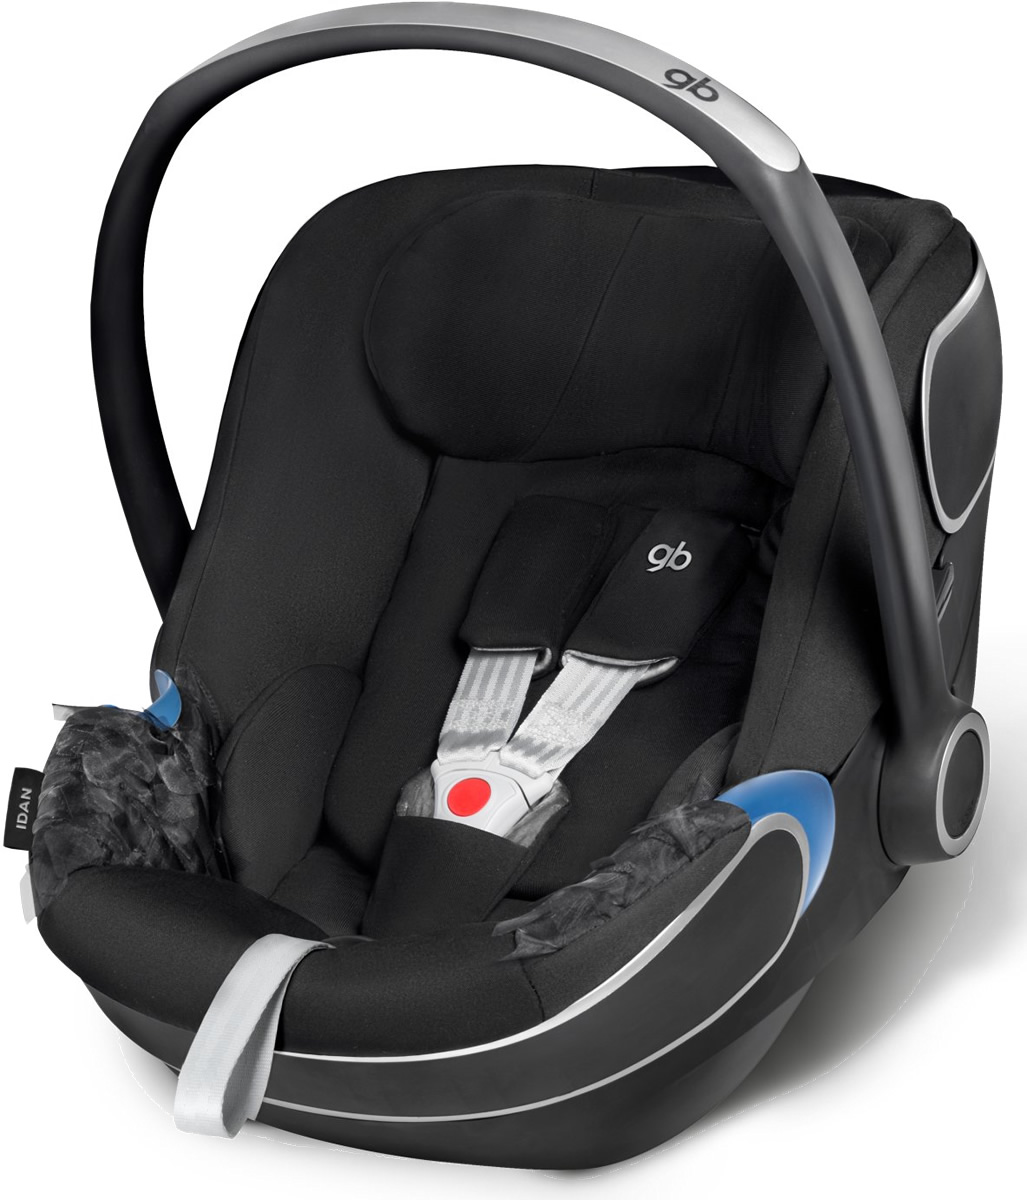 GB Idan Infant Car Seat - Day Dream